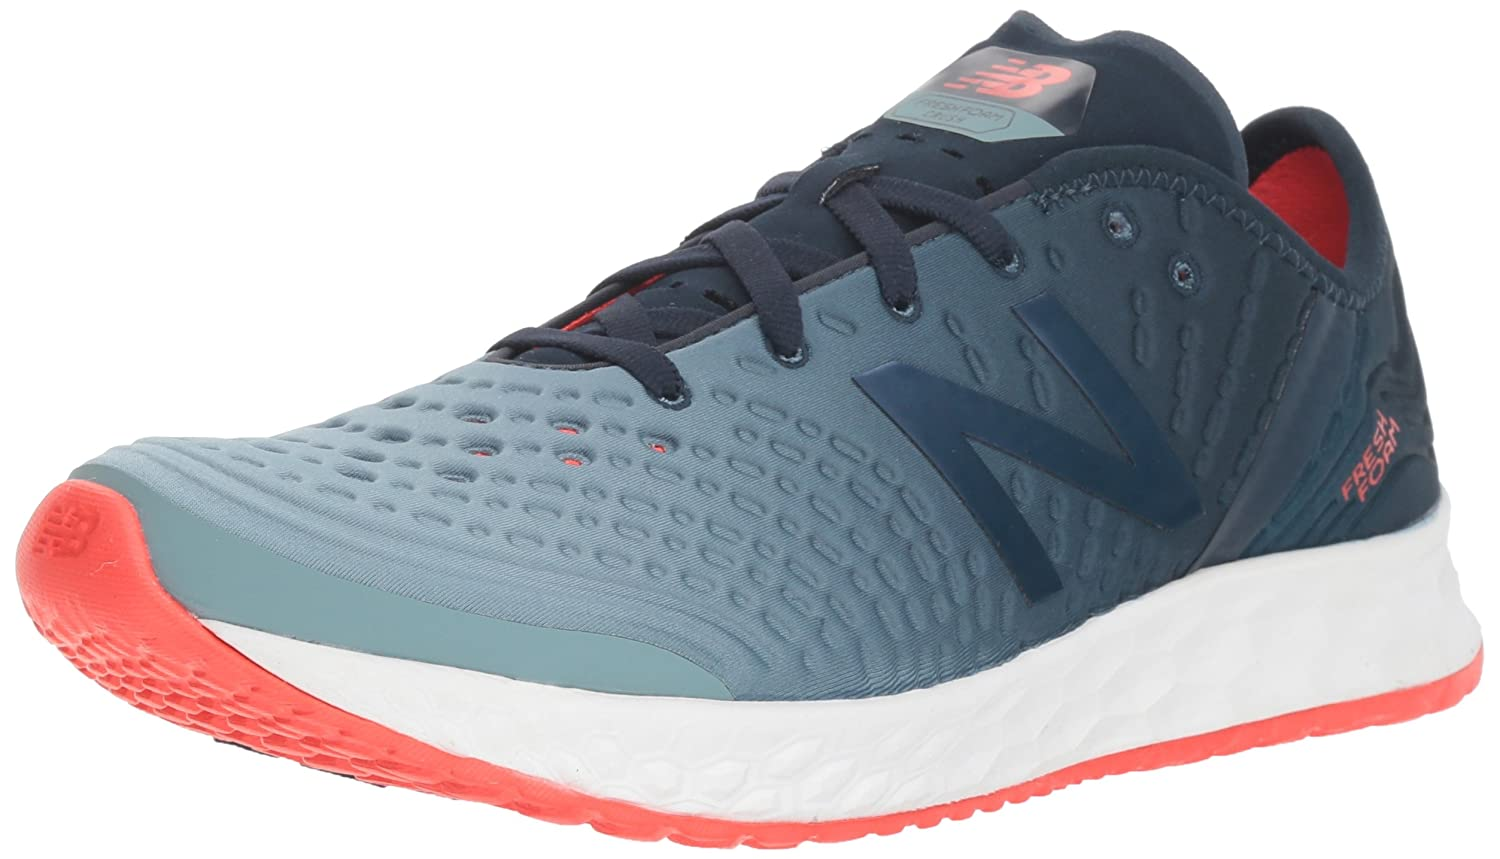 New Balance Women's Fresh Foam Crush V1 Cross Trainer B075R3M49J 7 W US|Blue